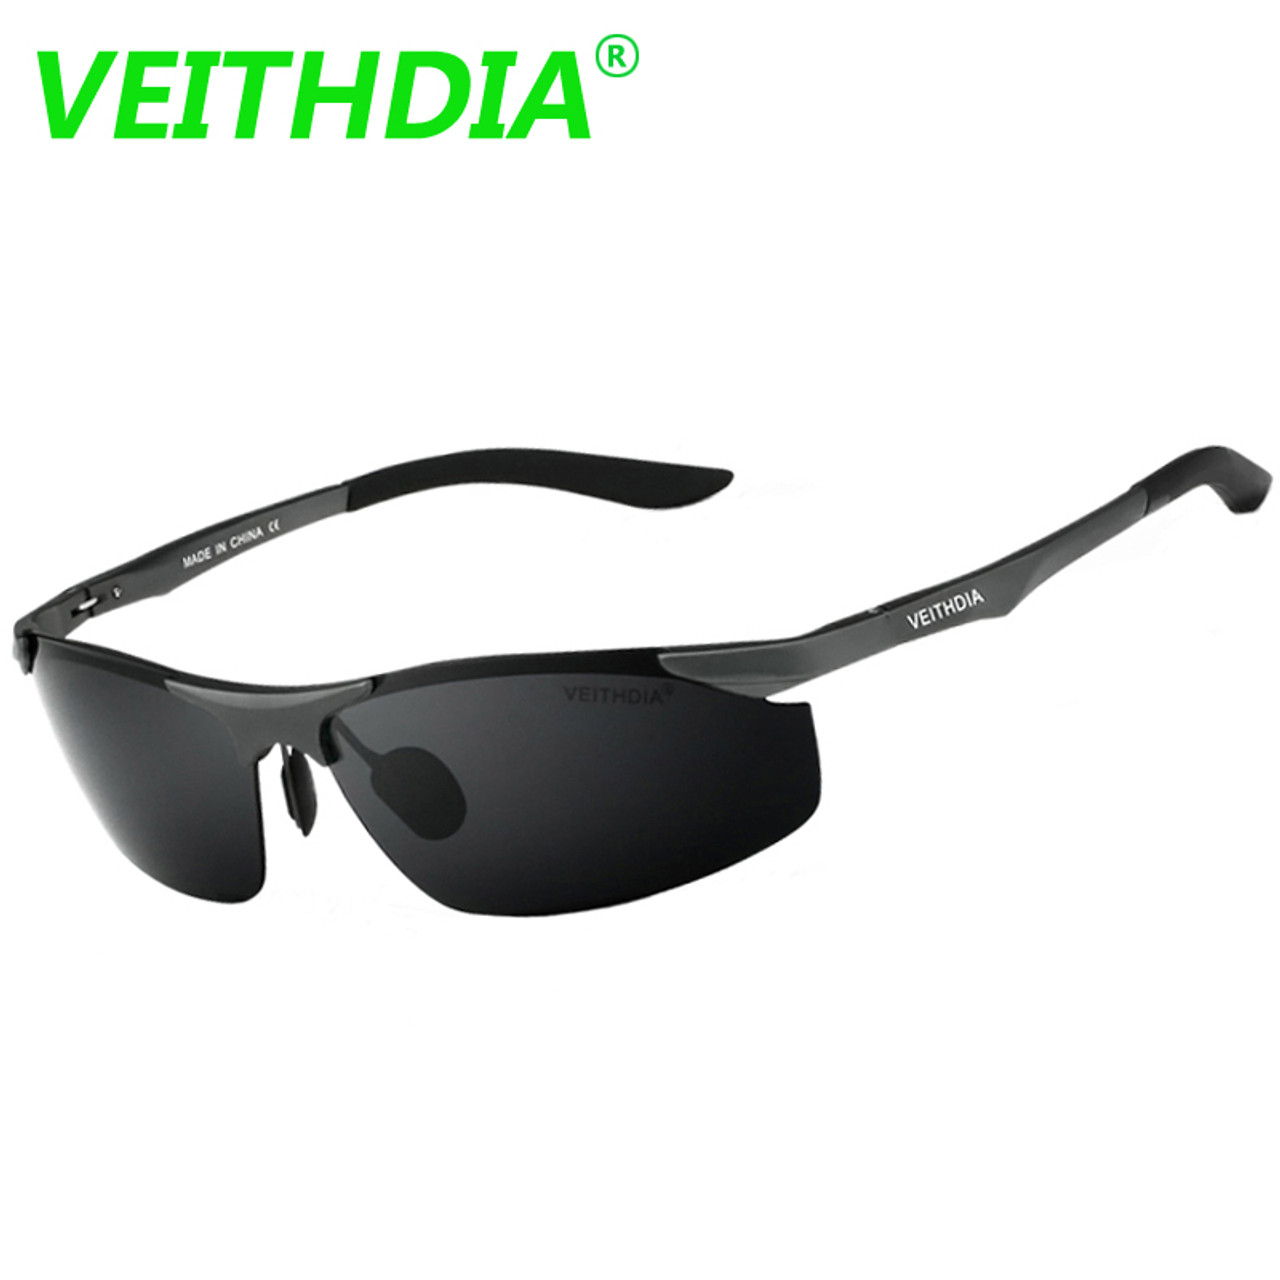 4a99abd0a0 ... VEITHDIA Aluminum Magnesium Brand Designer Polarized Sunglasses Men  Glasses Driving Glasses Summer 2017 Eyewear Accessories 6529 ...